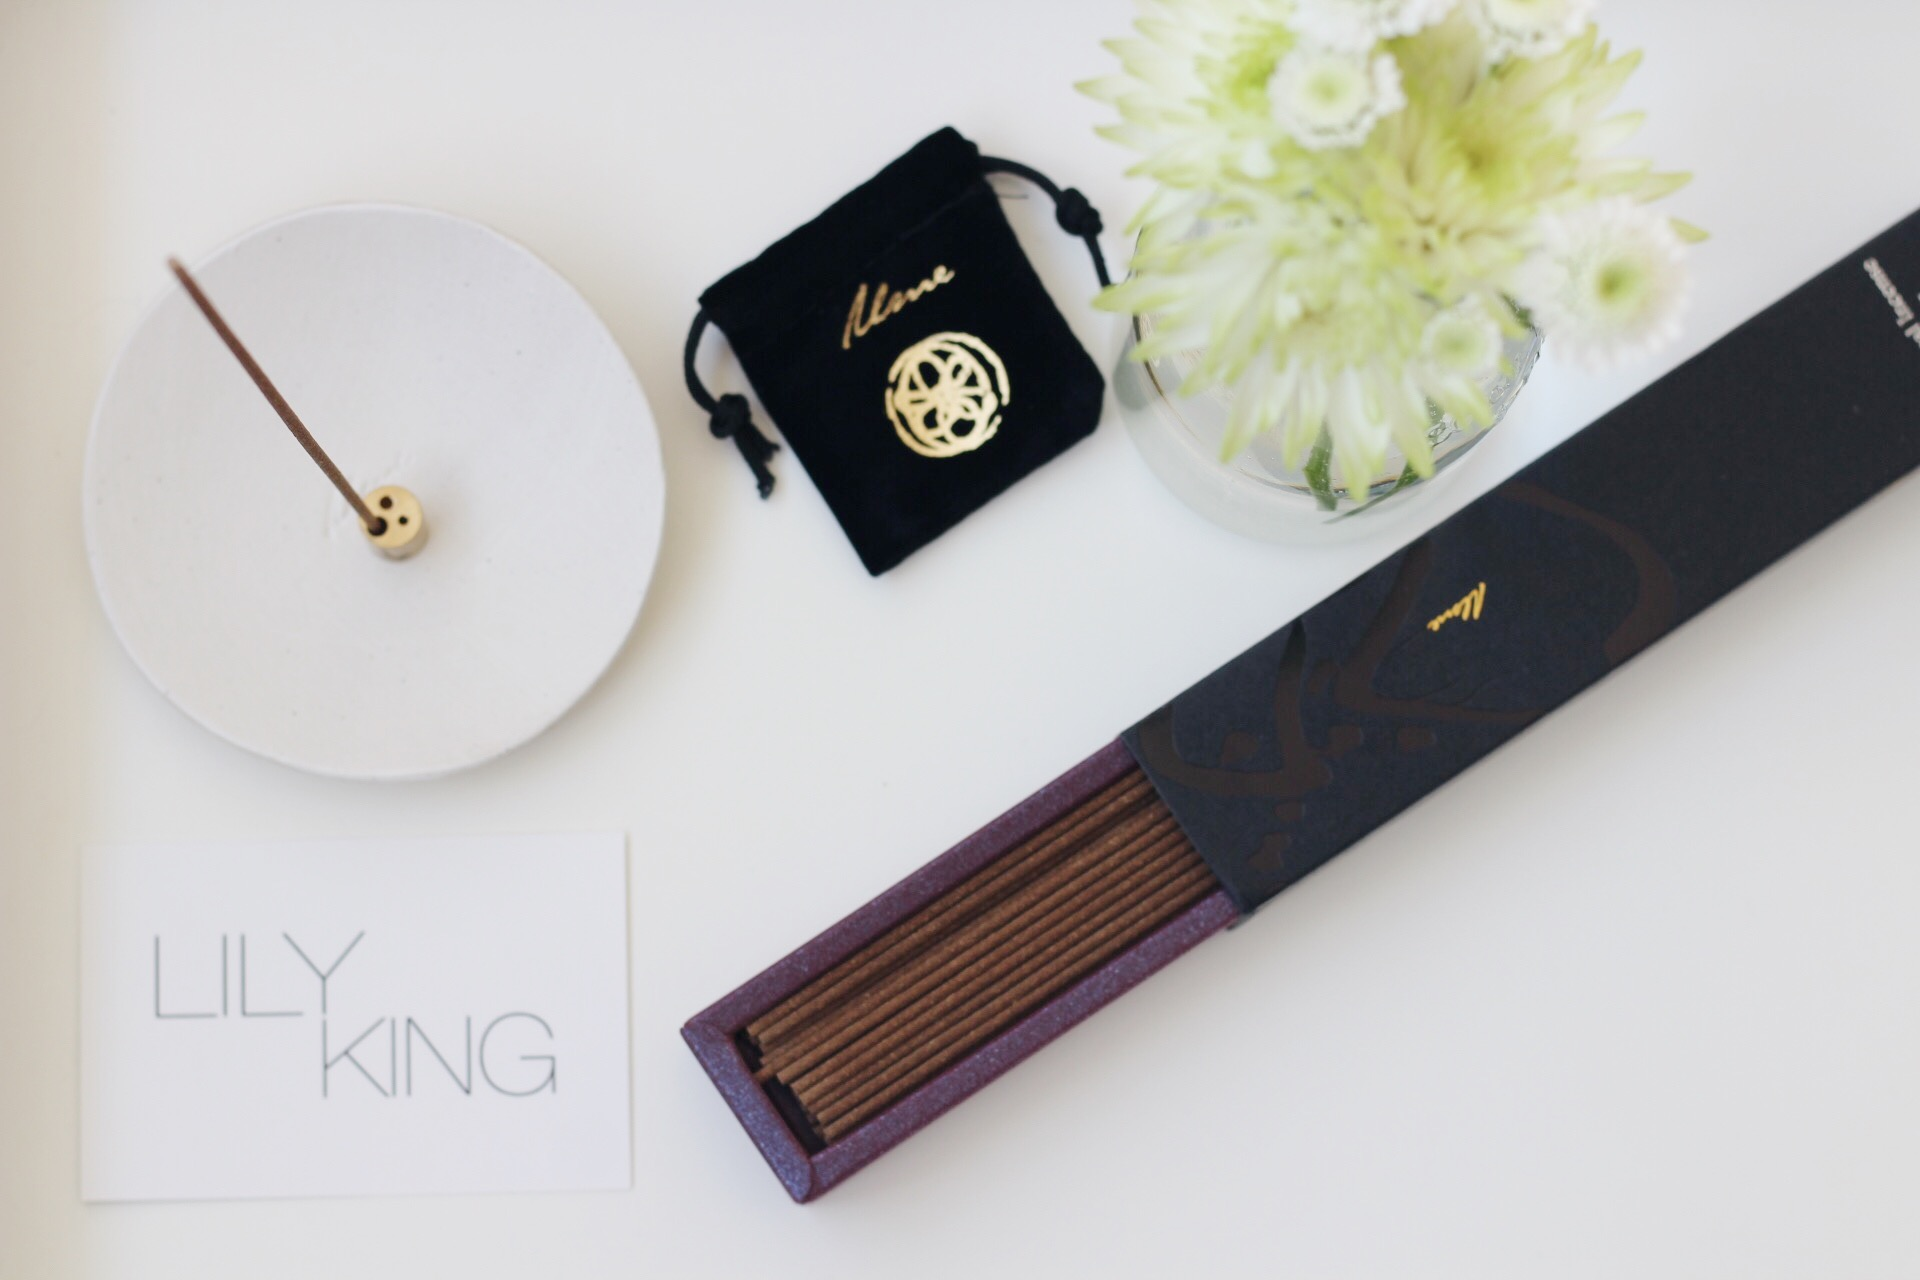 Mother's Day Gift Guide | Lily King | Ume Incense Sticks